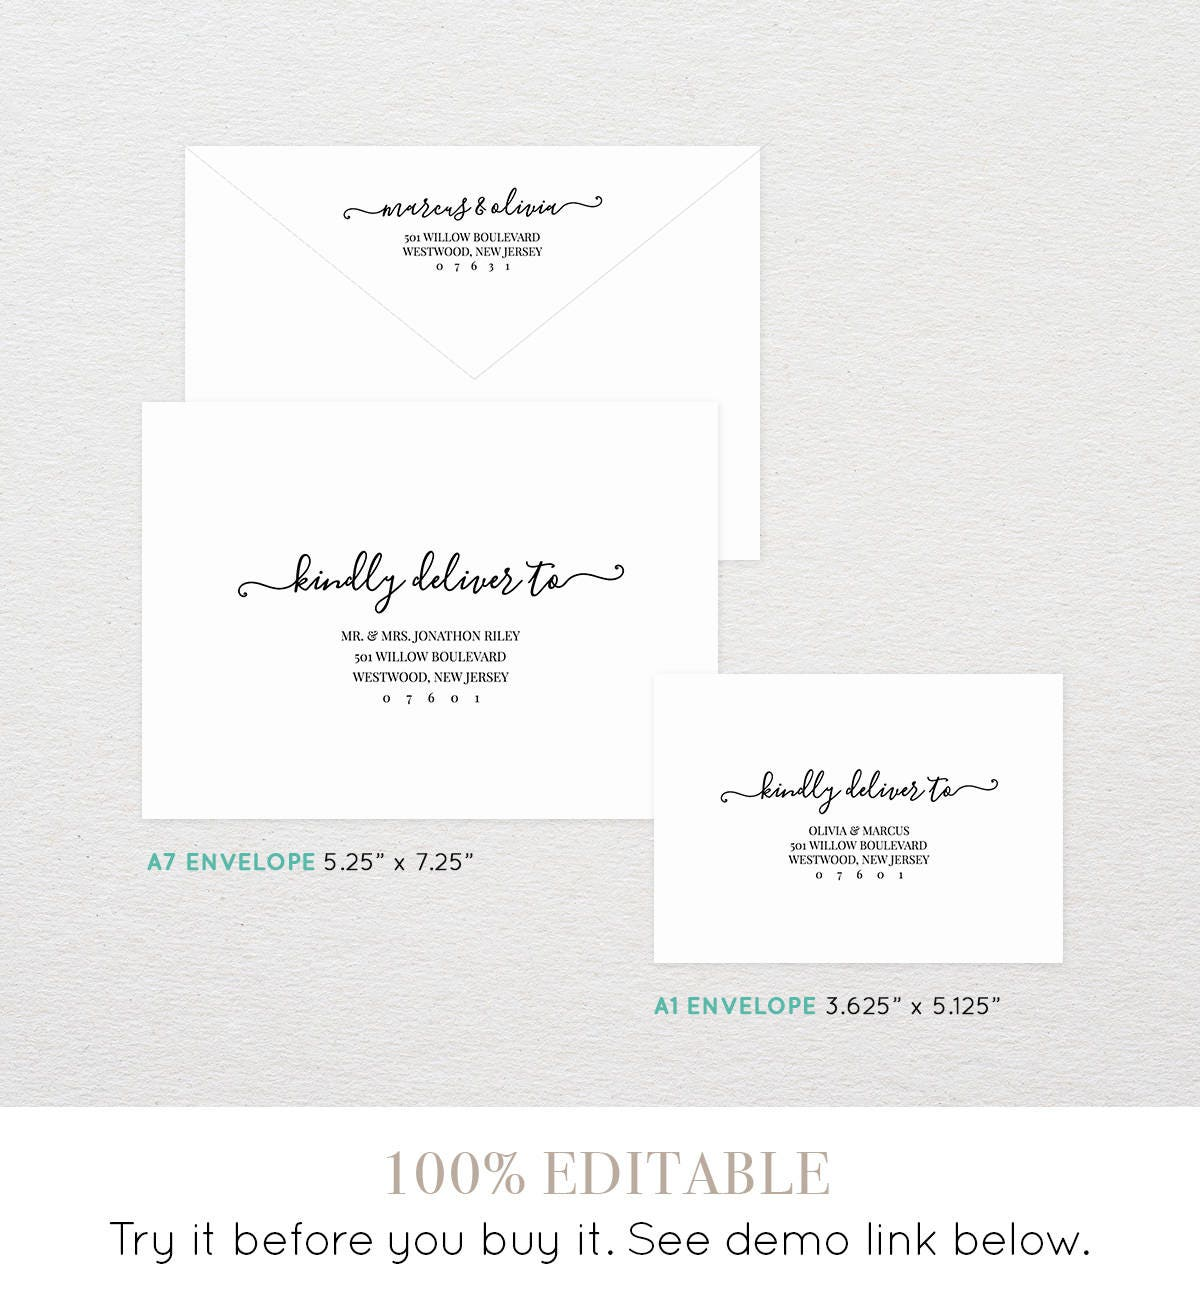 Modern Calligraphy Envelope Template Printable Wedding Envelope - A1 envelope template